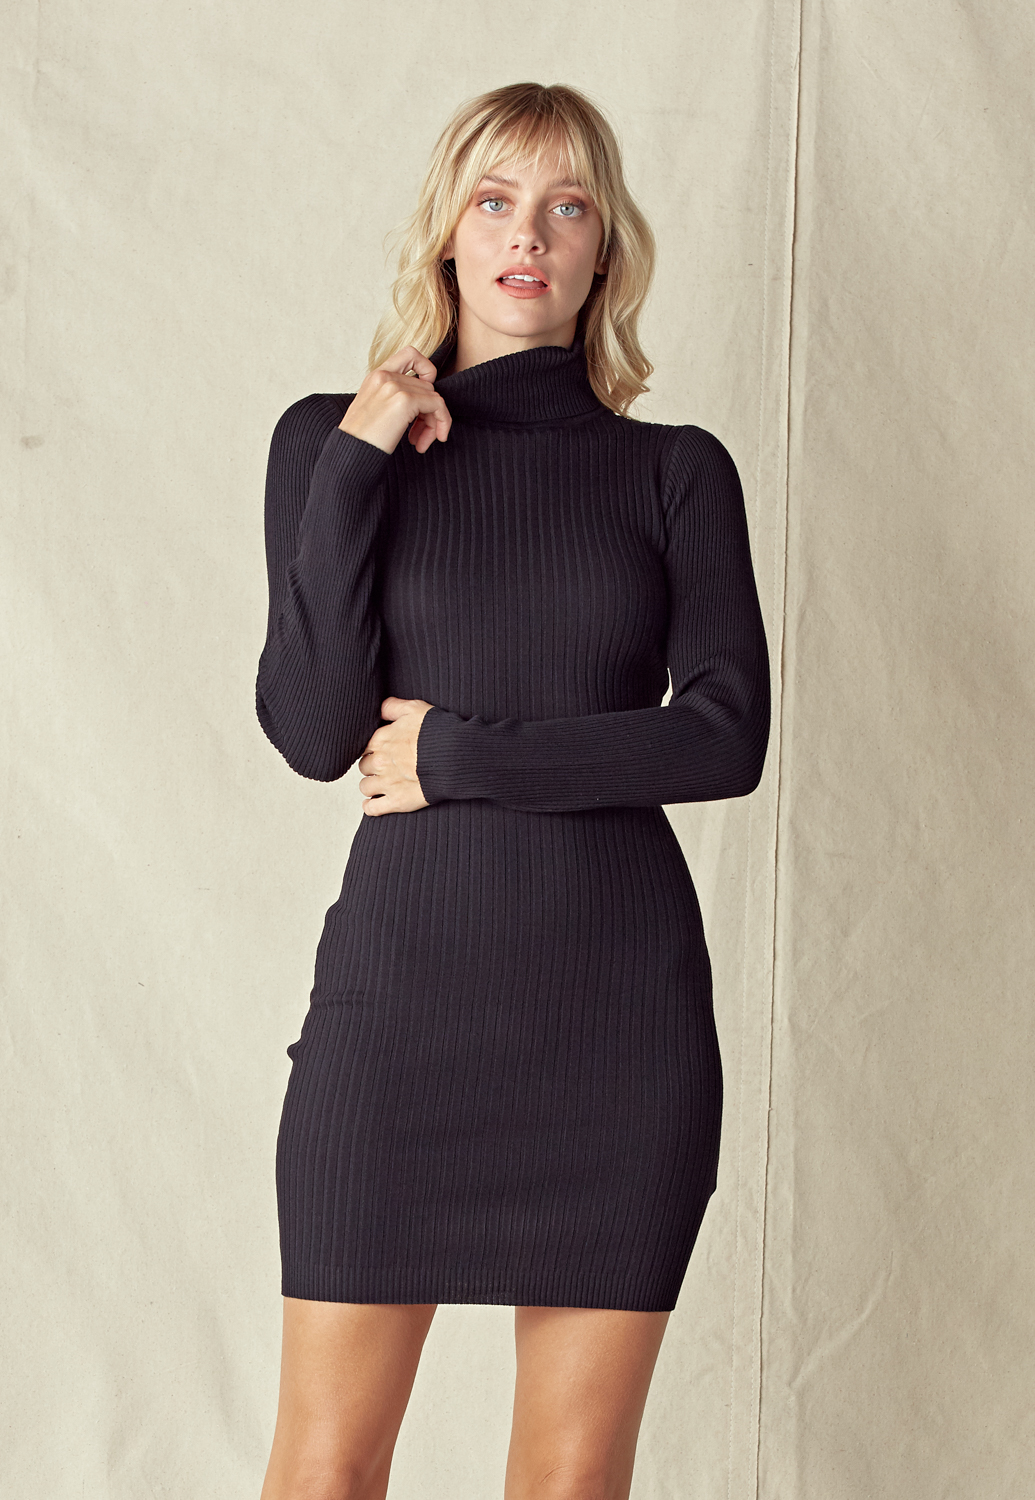 Turtleneck Rib Knit Dress